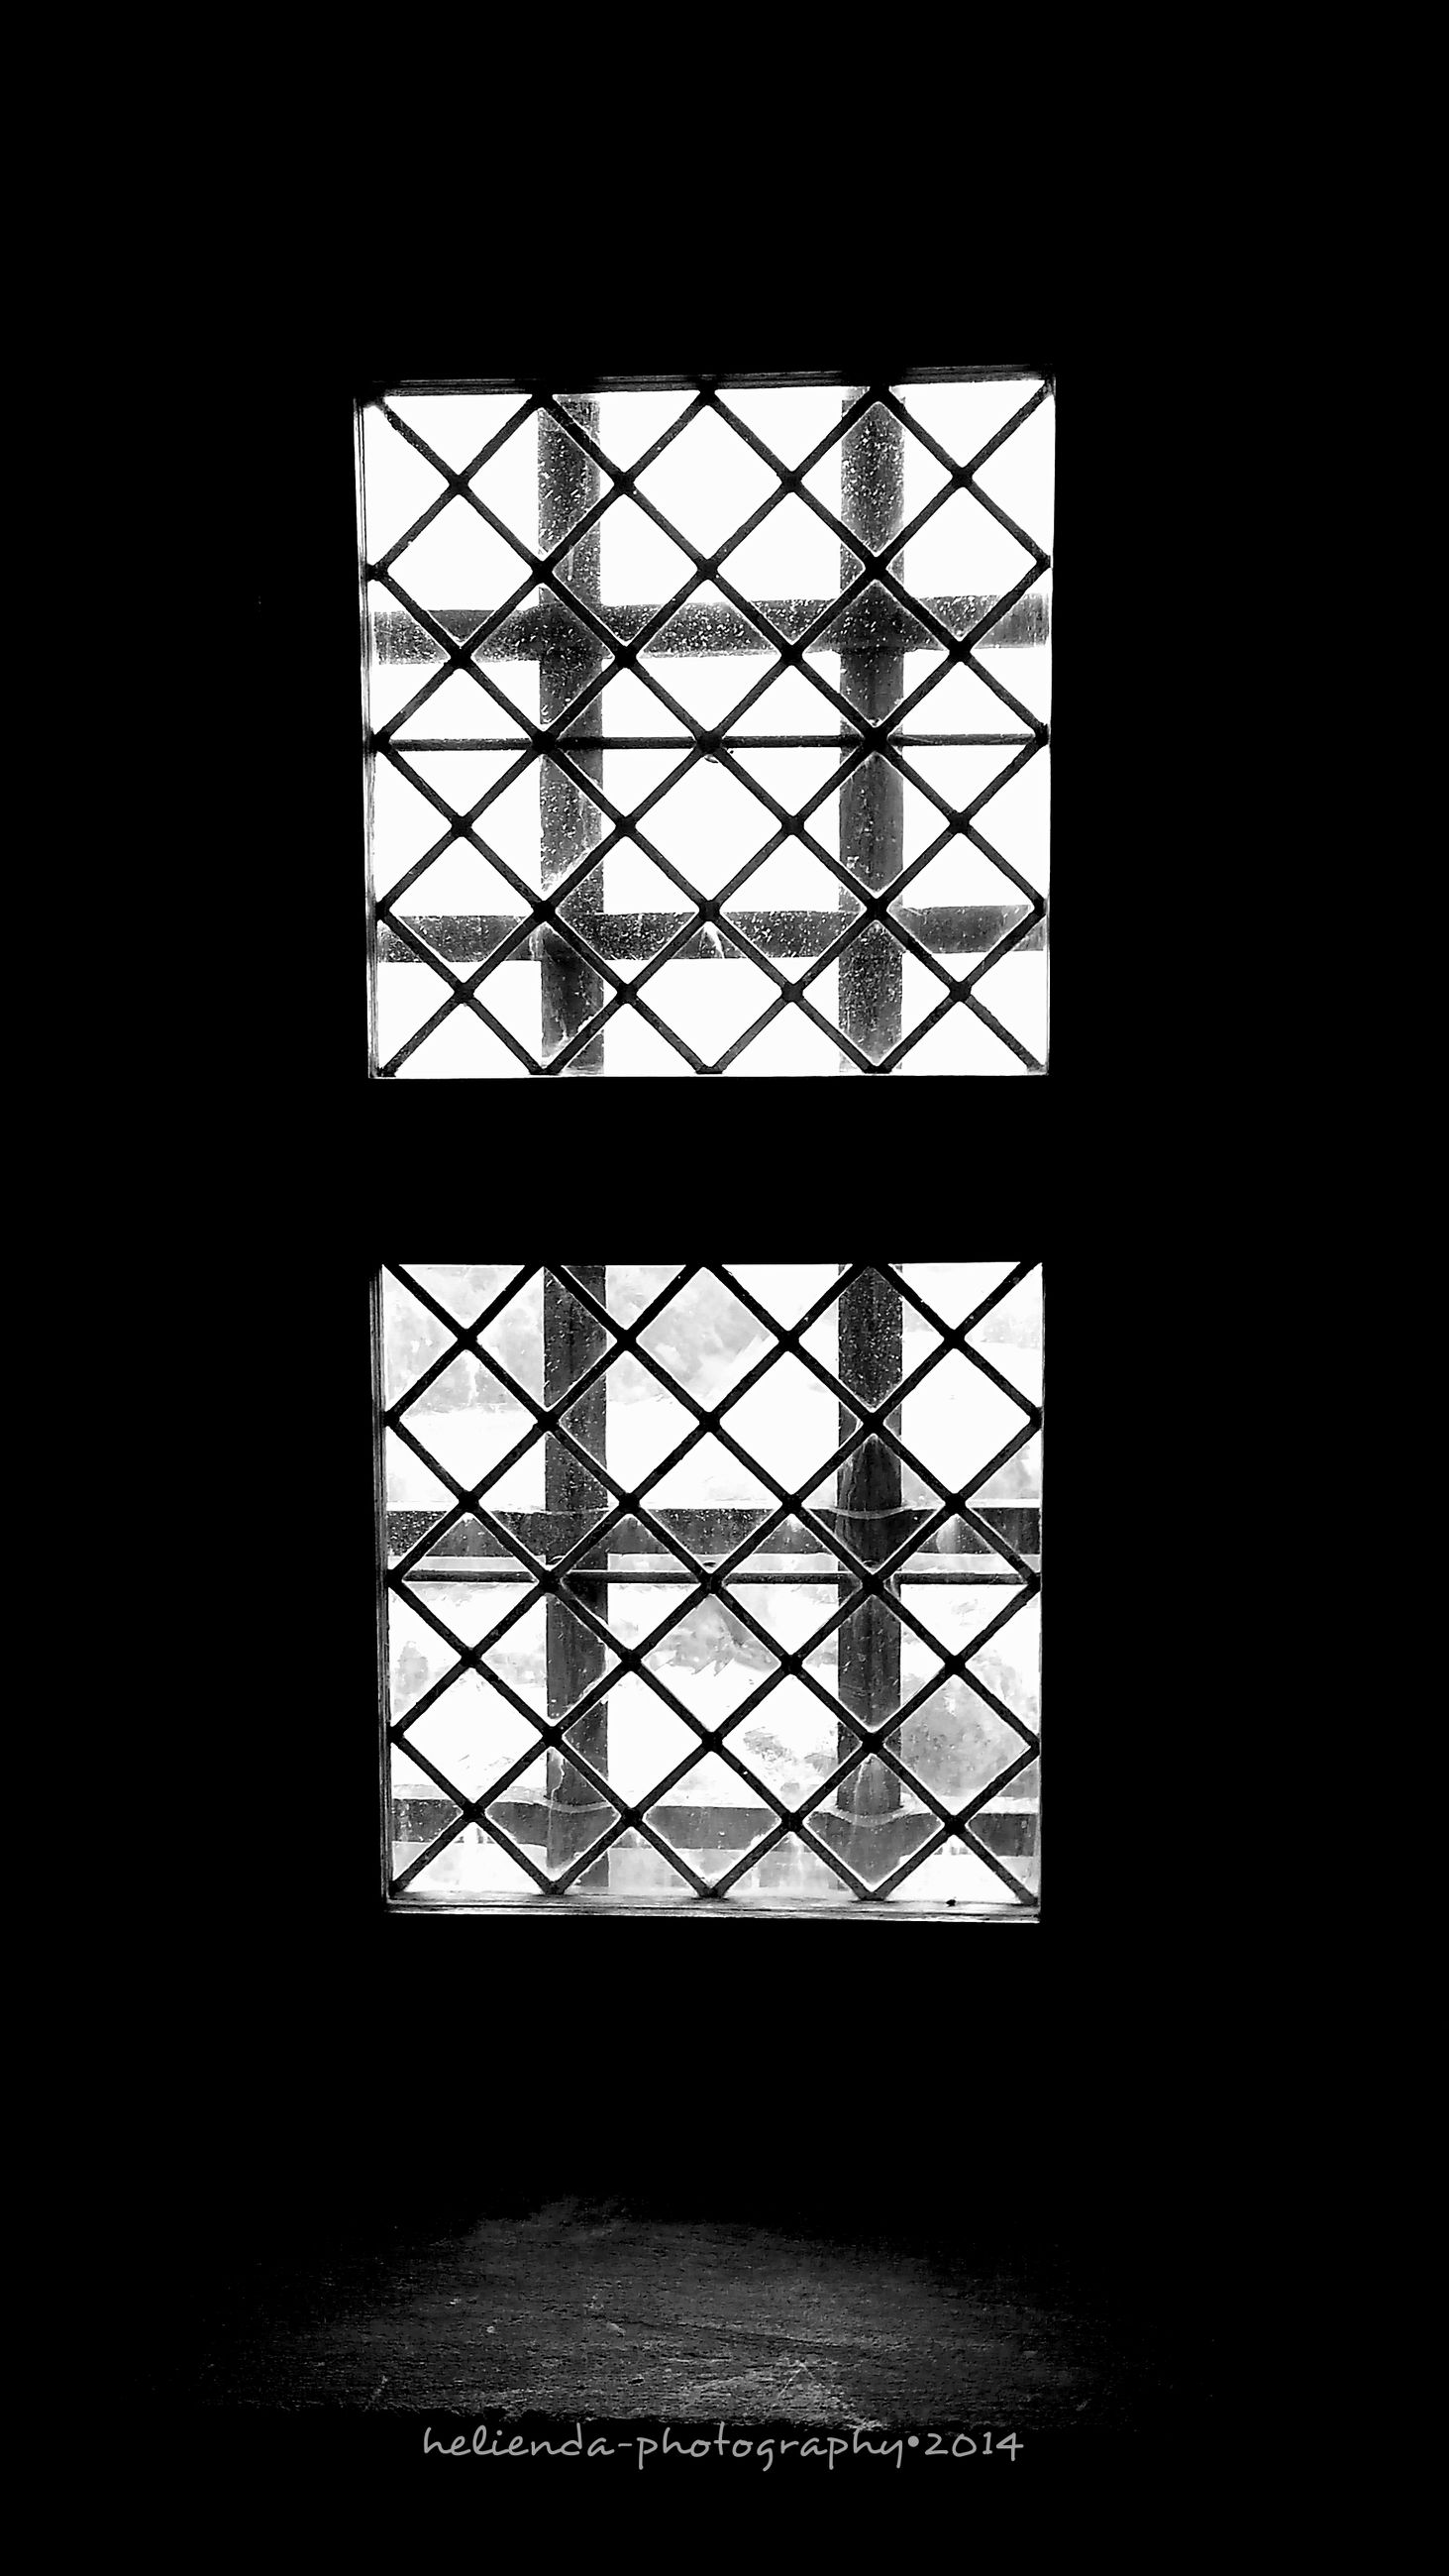 indoors, low angle view, silhouette, window, built structure, architecture, dark, geometric shape, glass - material, skylight, metal, transparent, no people, clear sky, grid, pattern, ceiling, day, sky, copy space